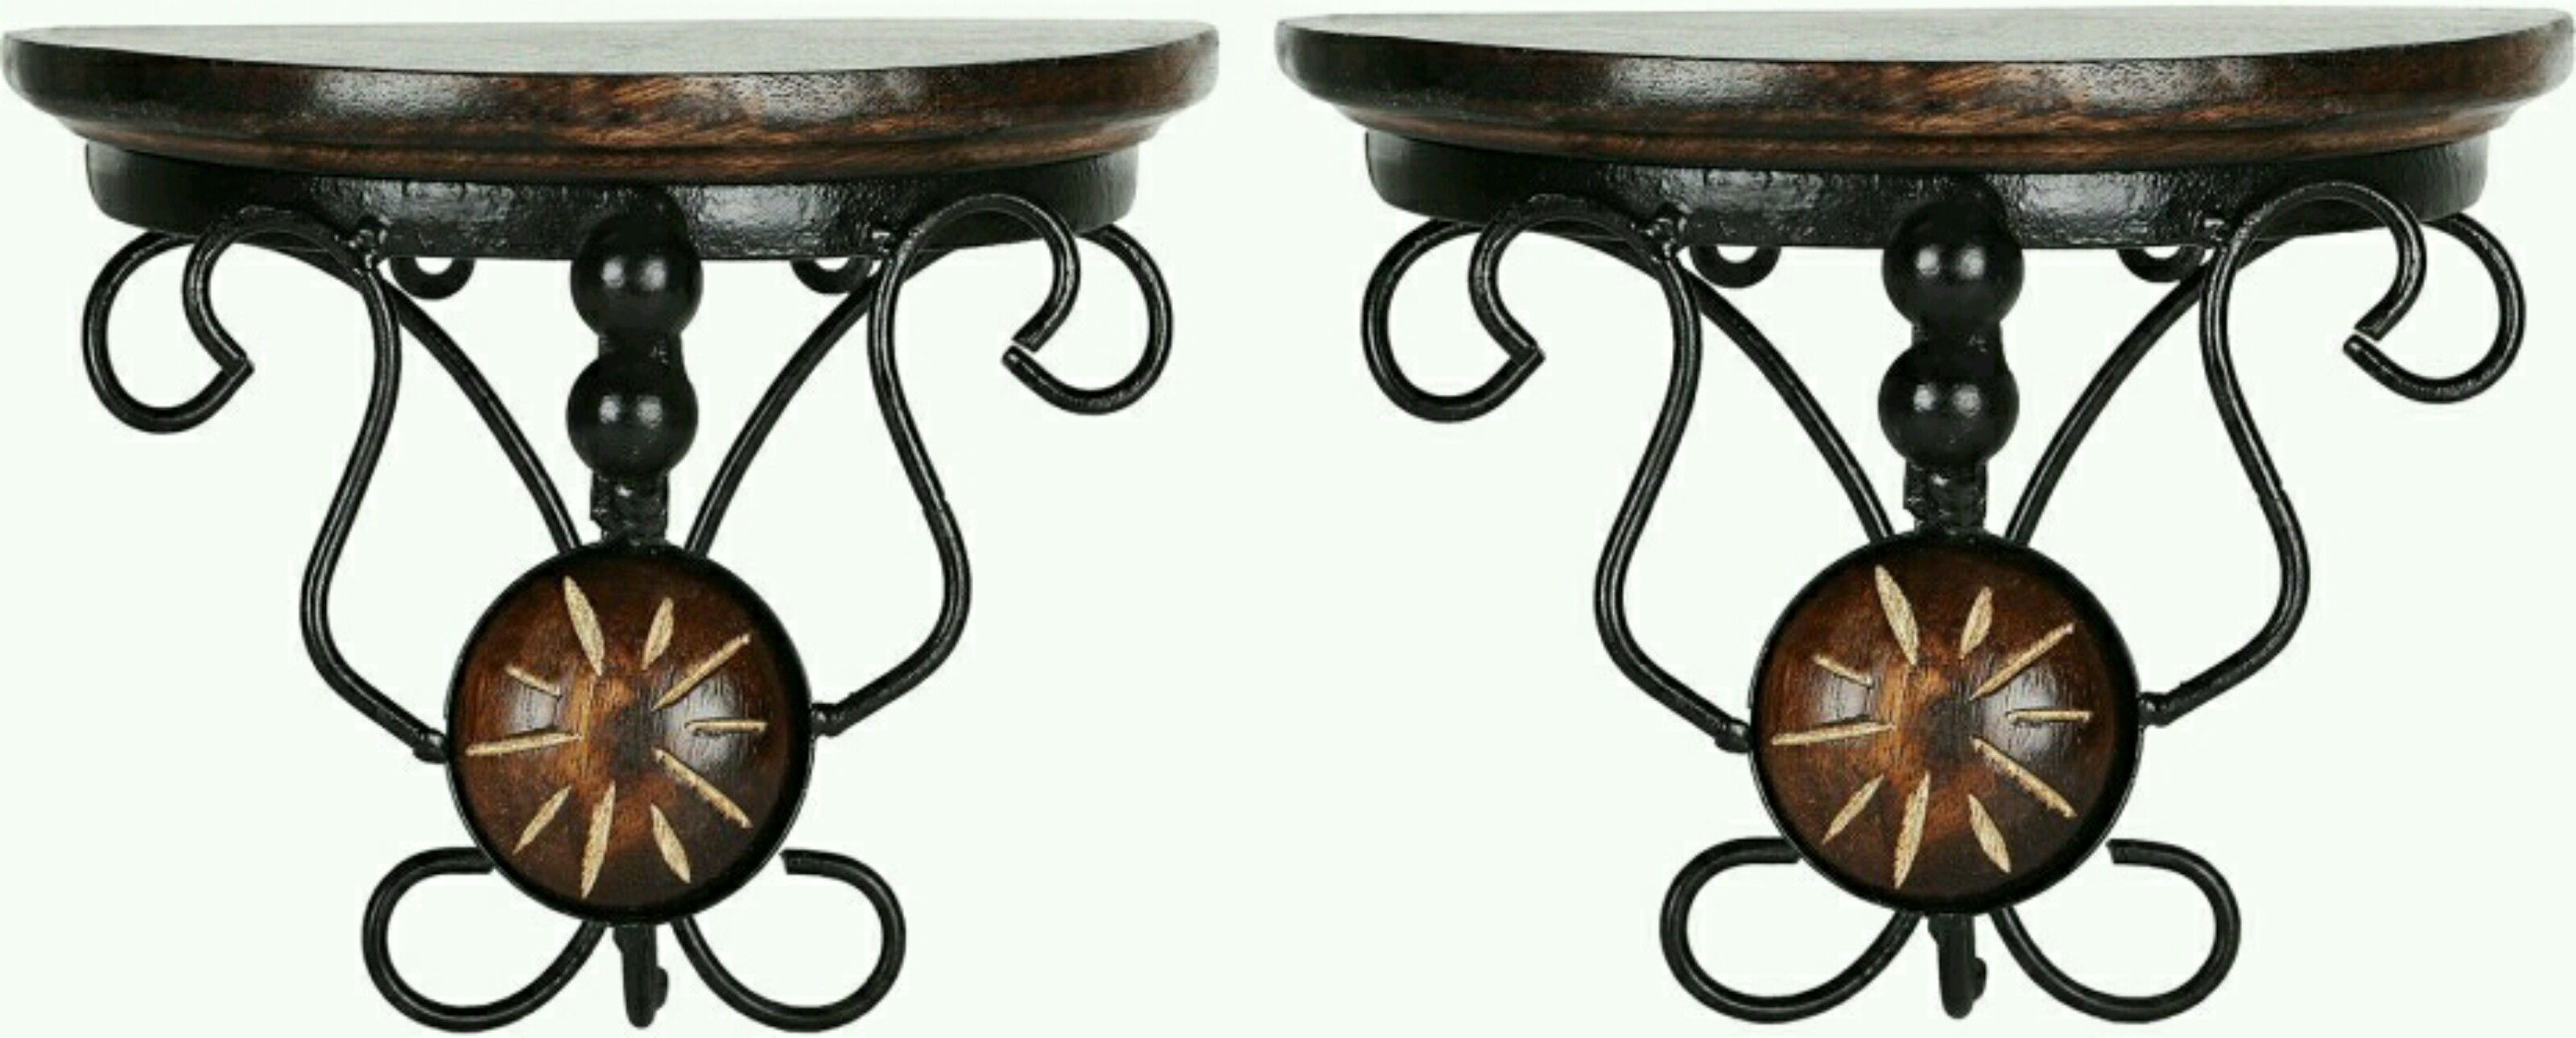 View OnlinePurchas Iron Wood Wooden Wall Shelf(Number of Shelves - 2) Furniture (OnlinePurchas)